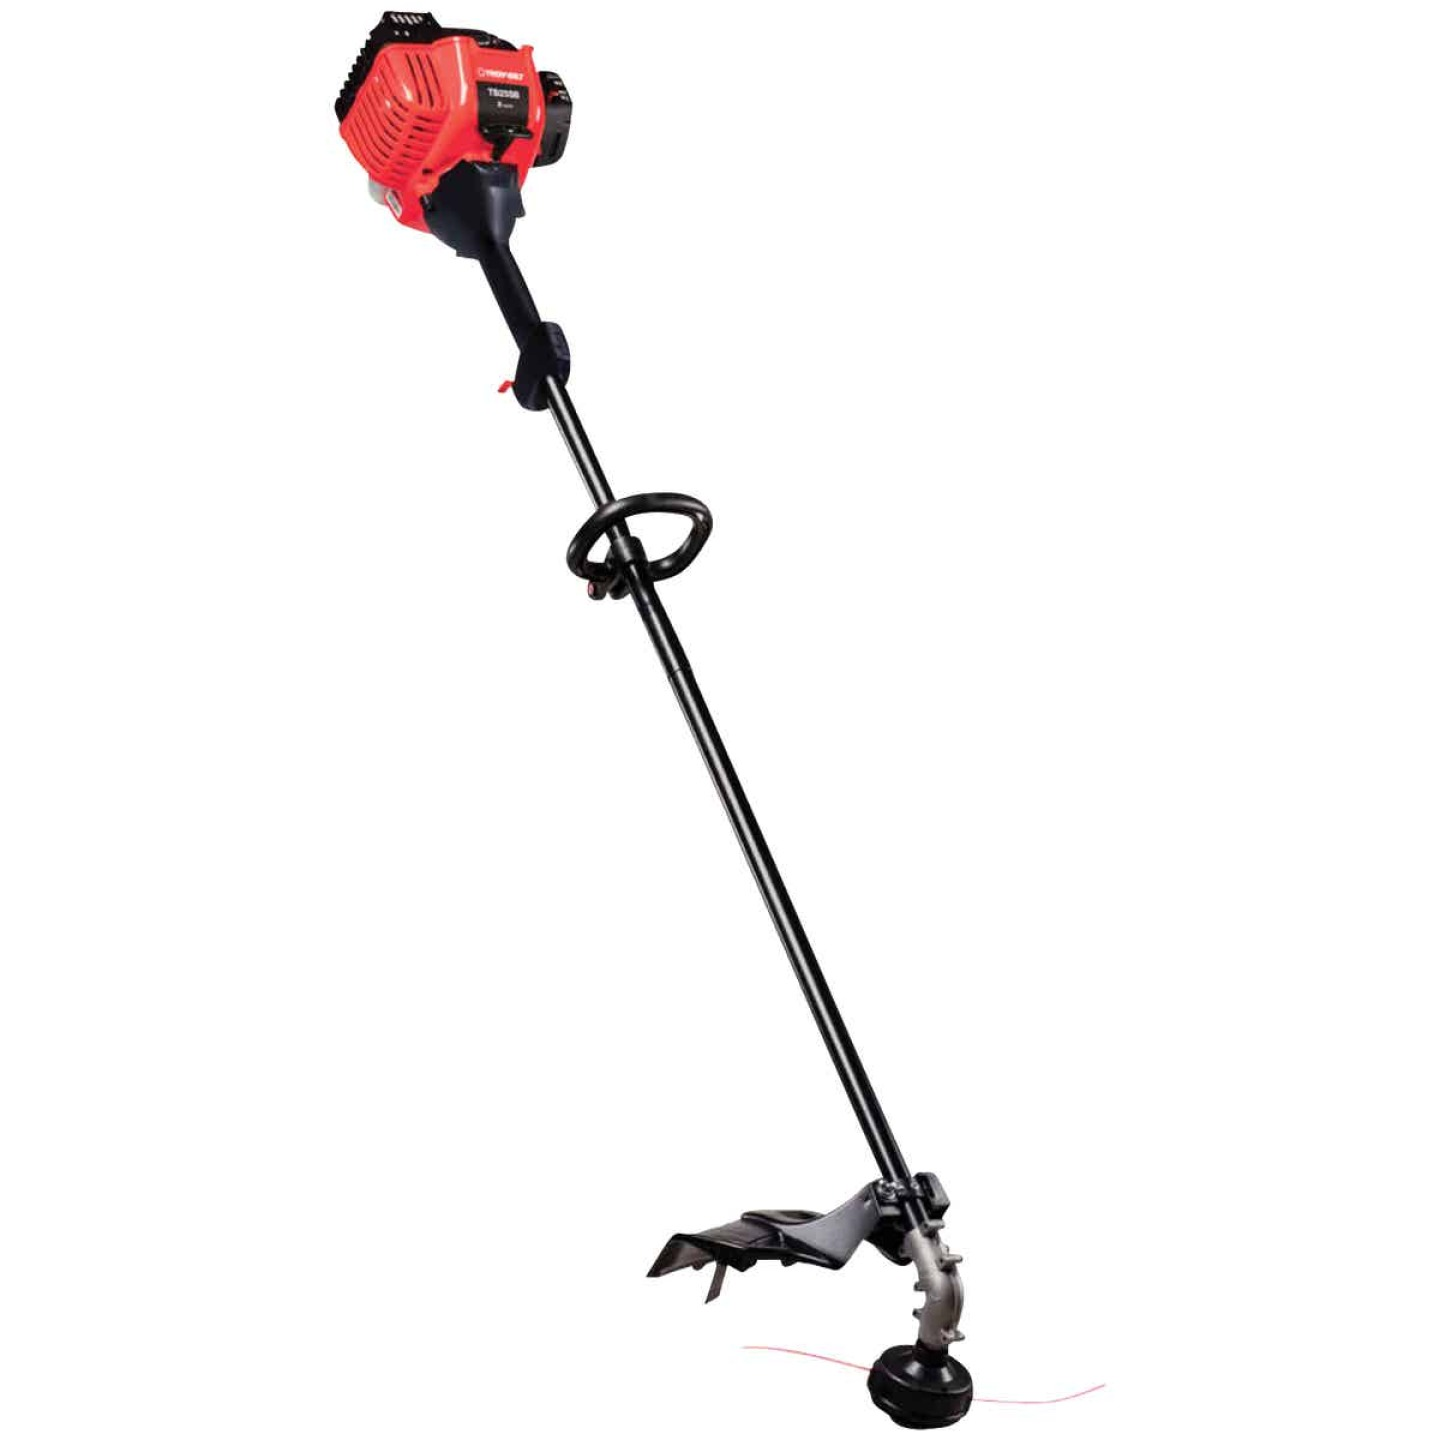 Remington RM2580 Rustler 25cc 2-Cycle 16 In. Straight Shaft Gas Trimmer Image 1